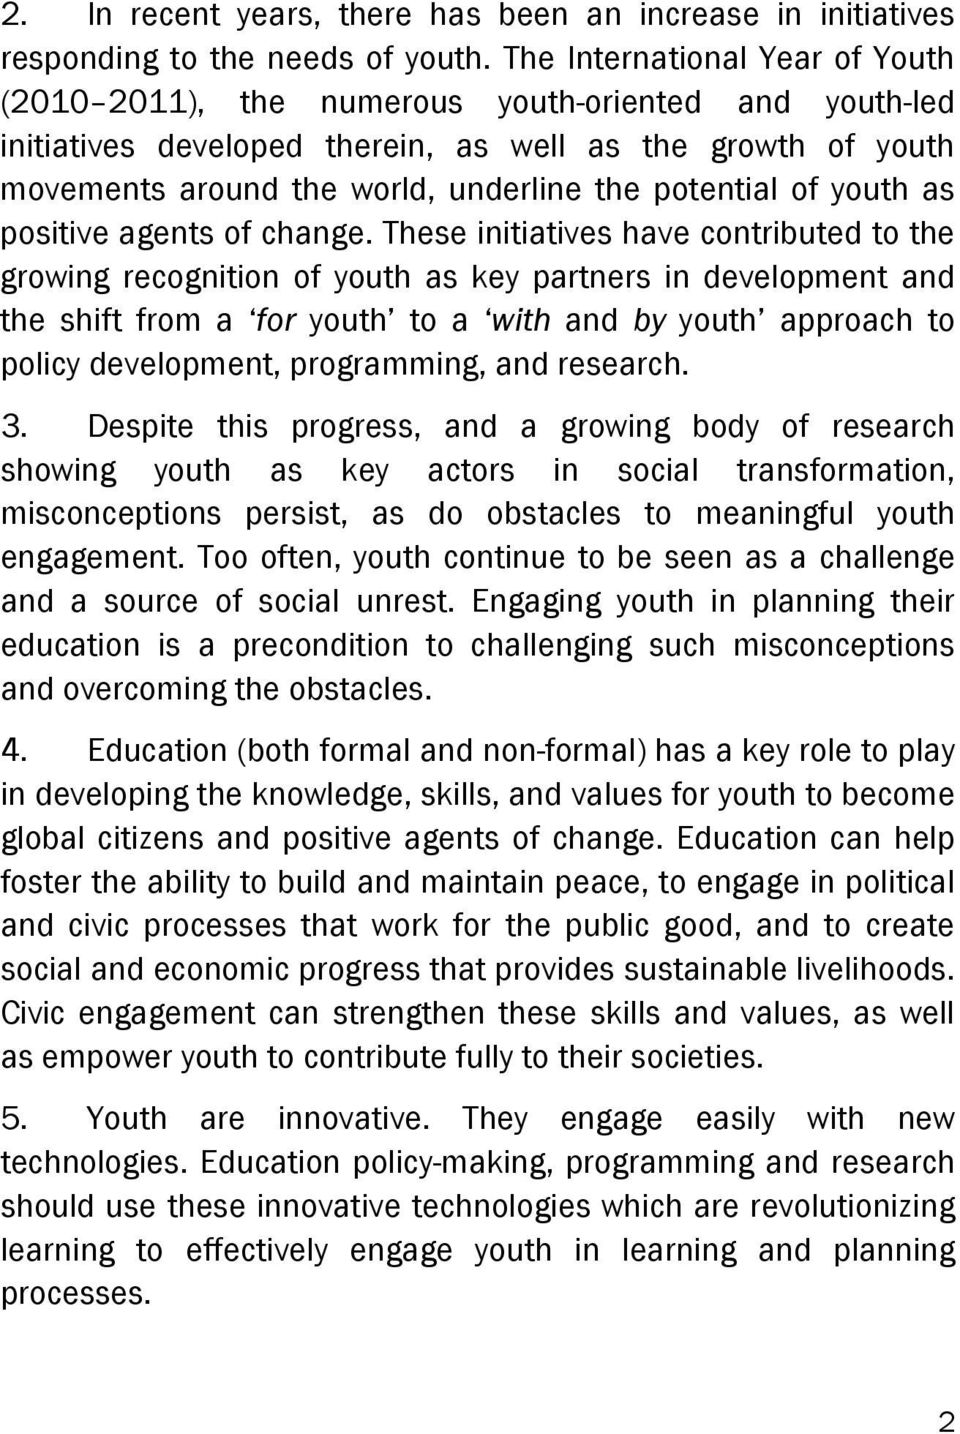 potential of youth as positive agents of change.